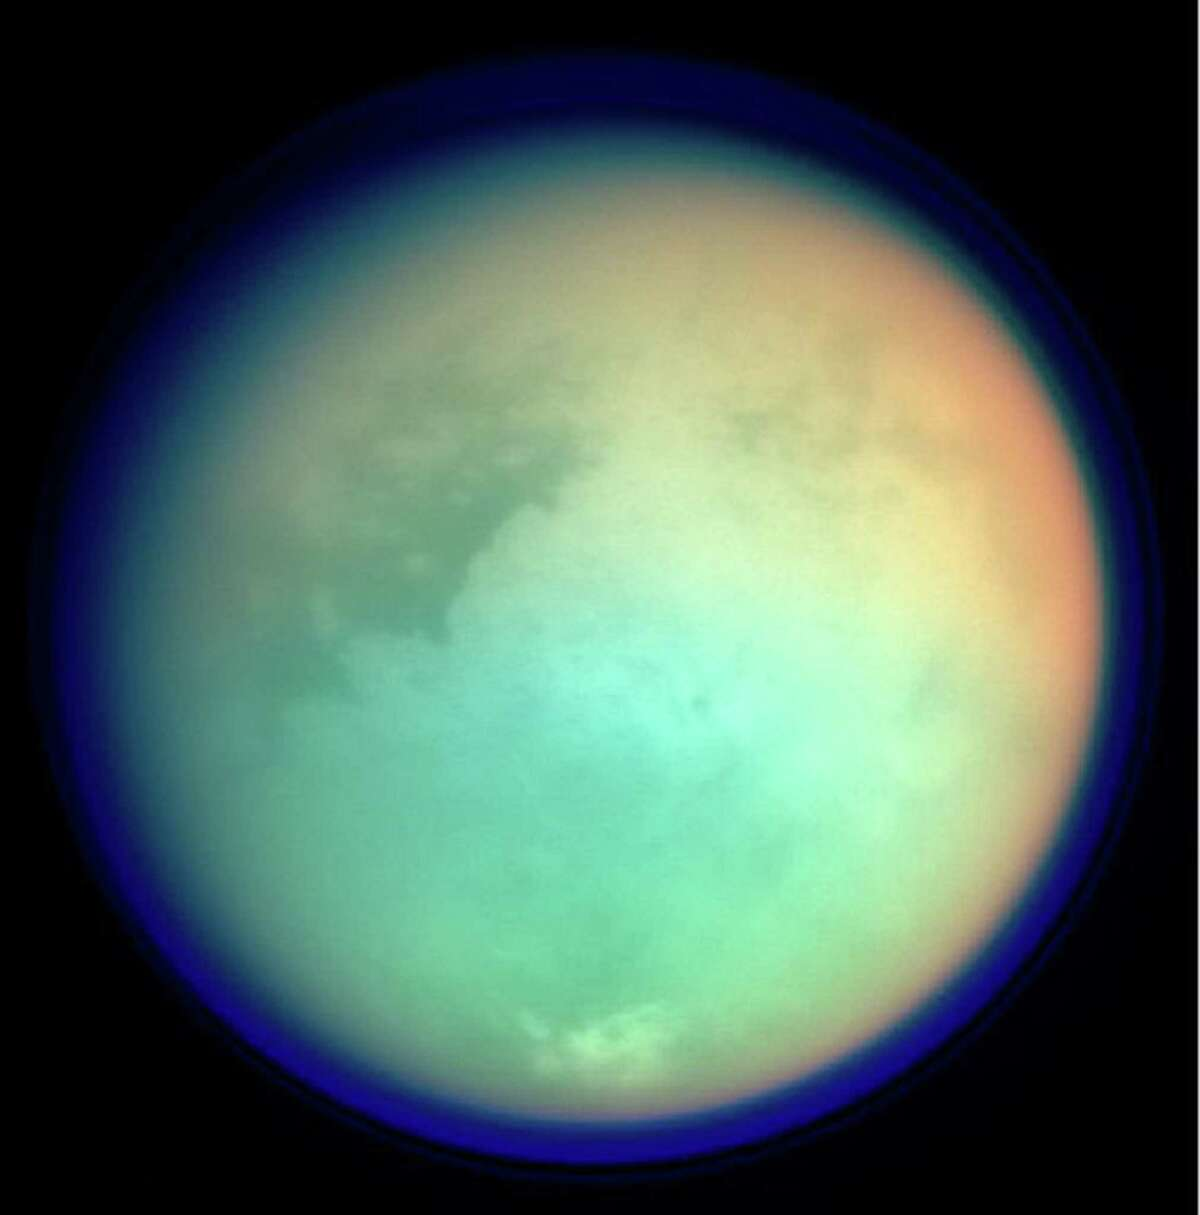 This photo shows Saturn's moon, Titan, in ultraviolet and infrared wavelengths. Scientists have been fascinated with Titan for many years because, similar to Earth, Saturn's largest moon has a nitrogen-dominated atmosphere.